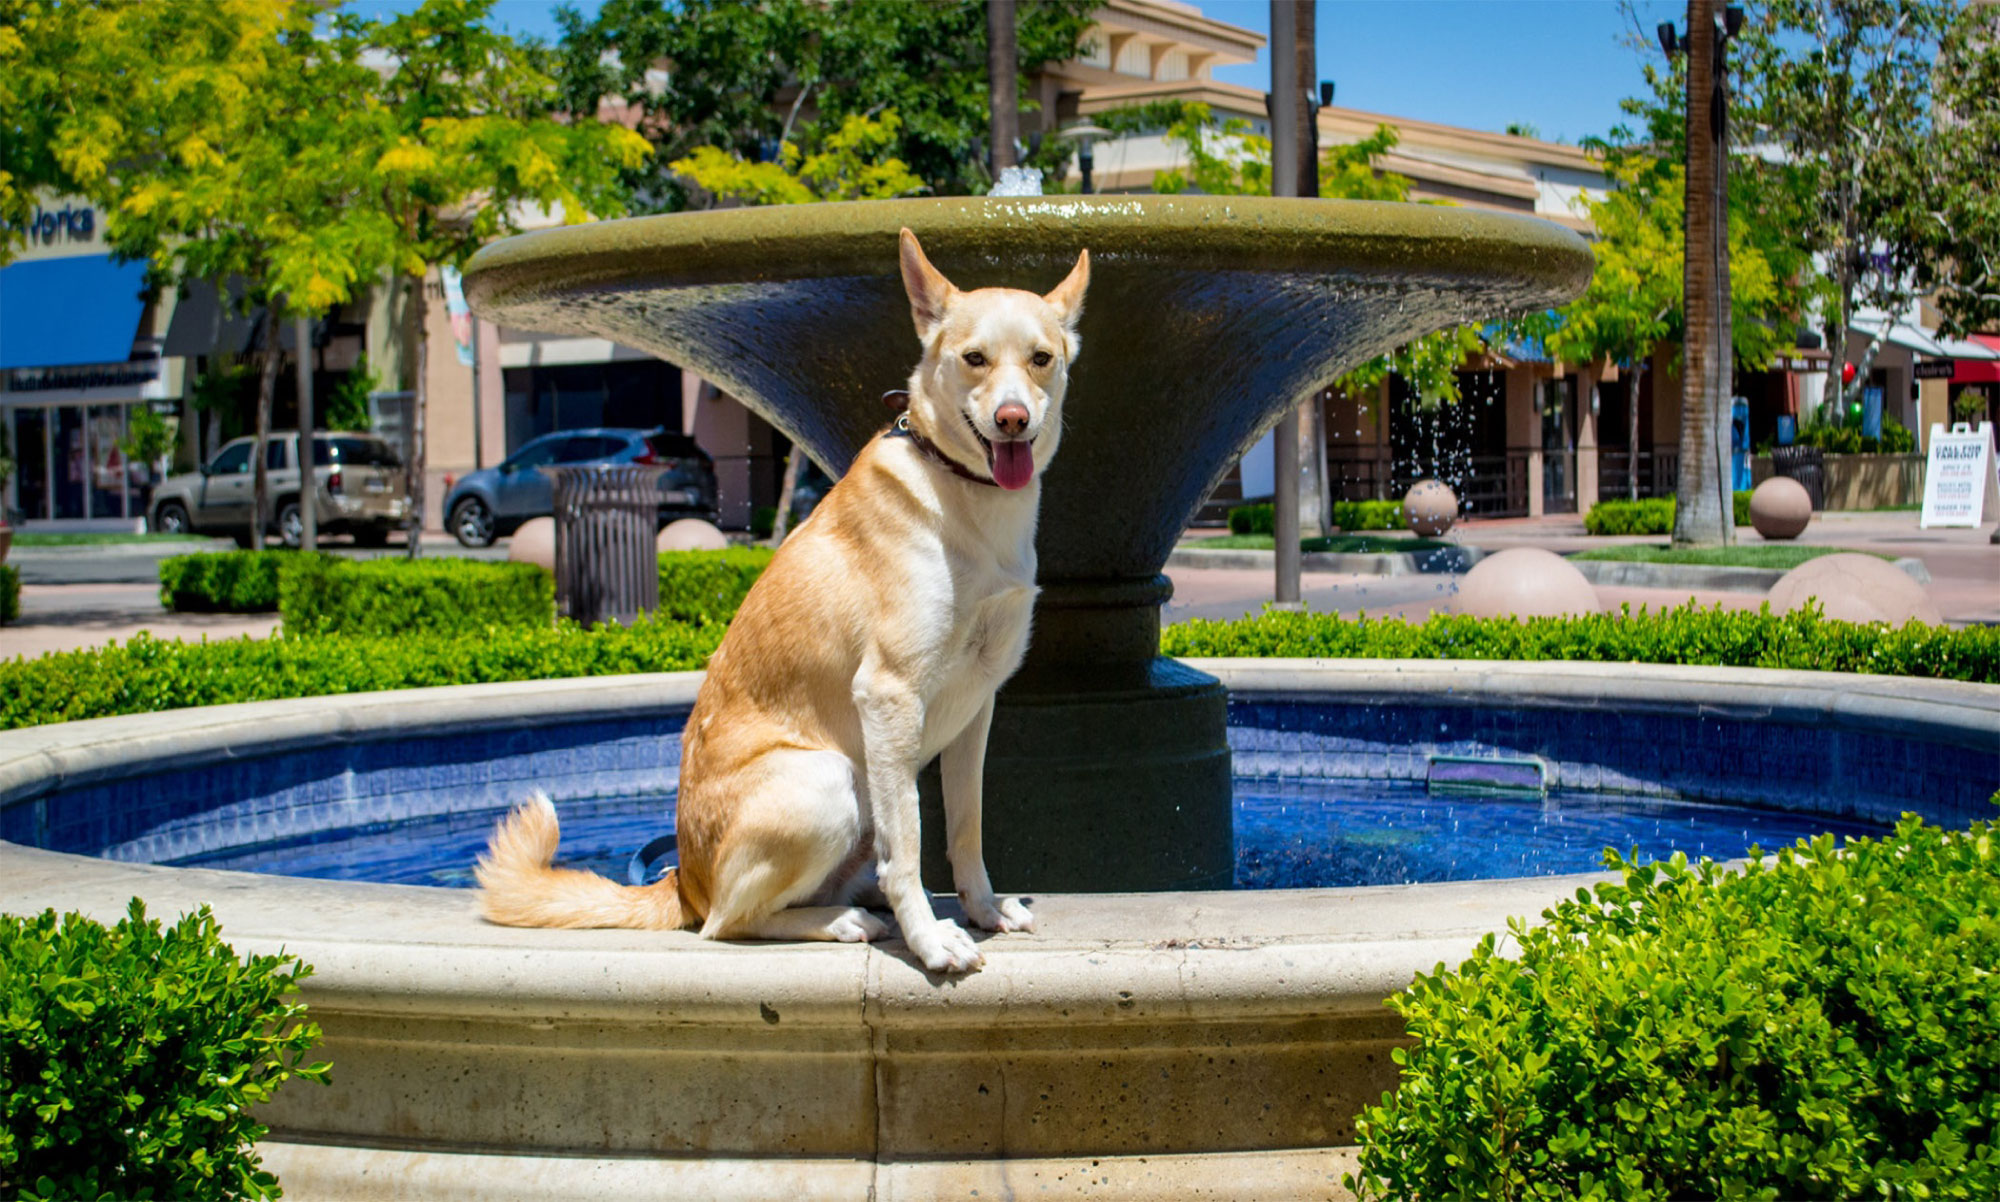 Dog sitting at water fountain